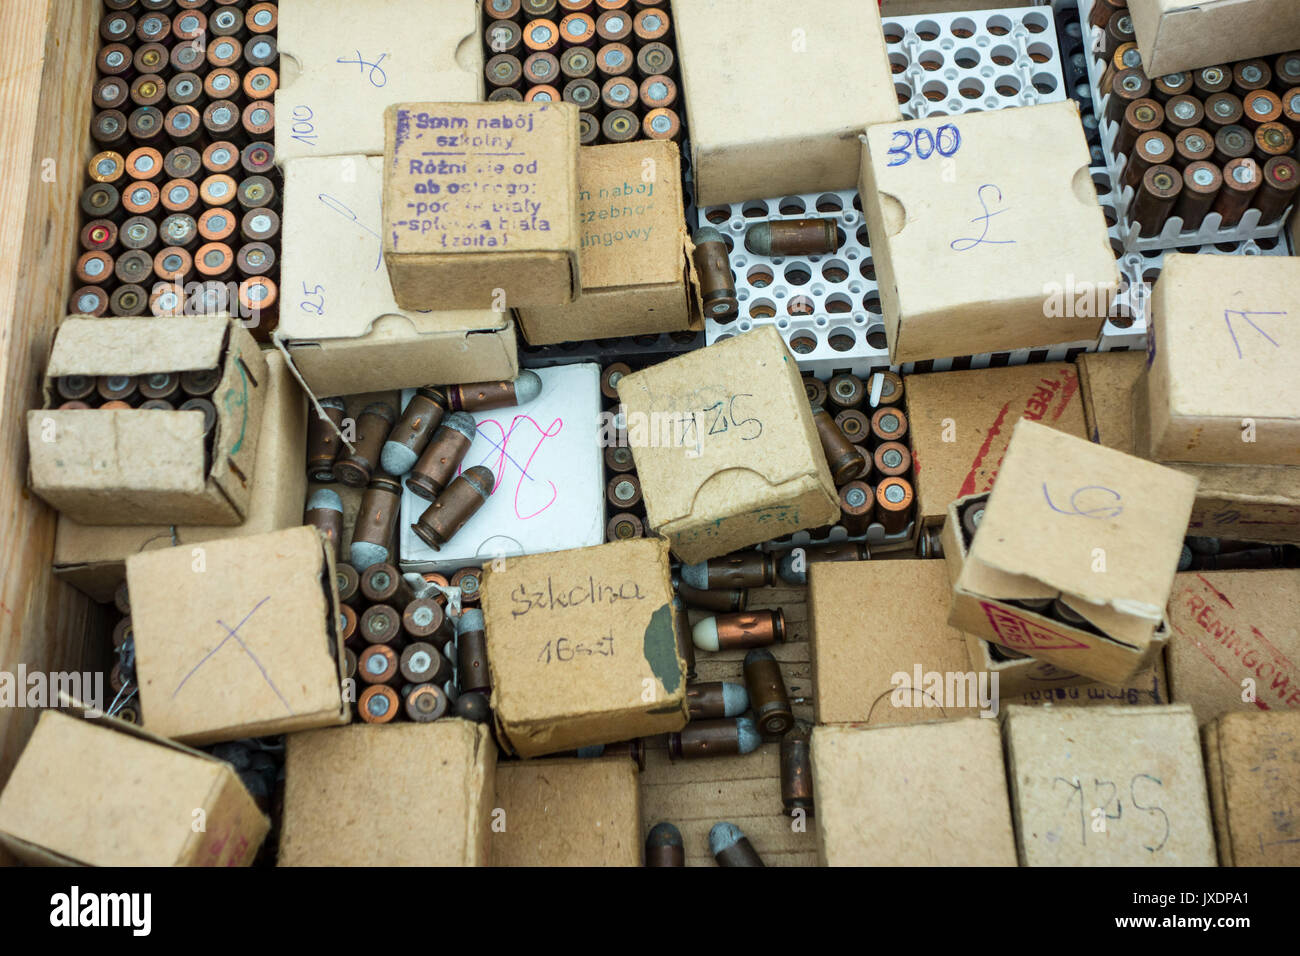 Boxes with 9 mm bullets for sale at militaria fair - Stock Image